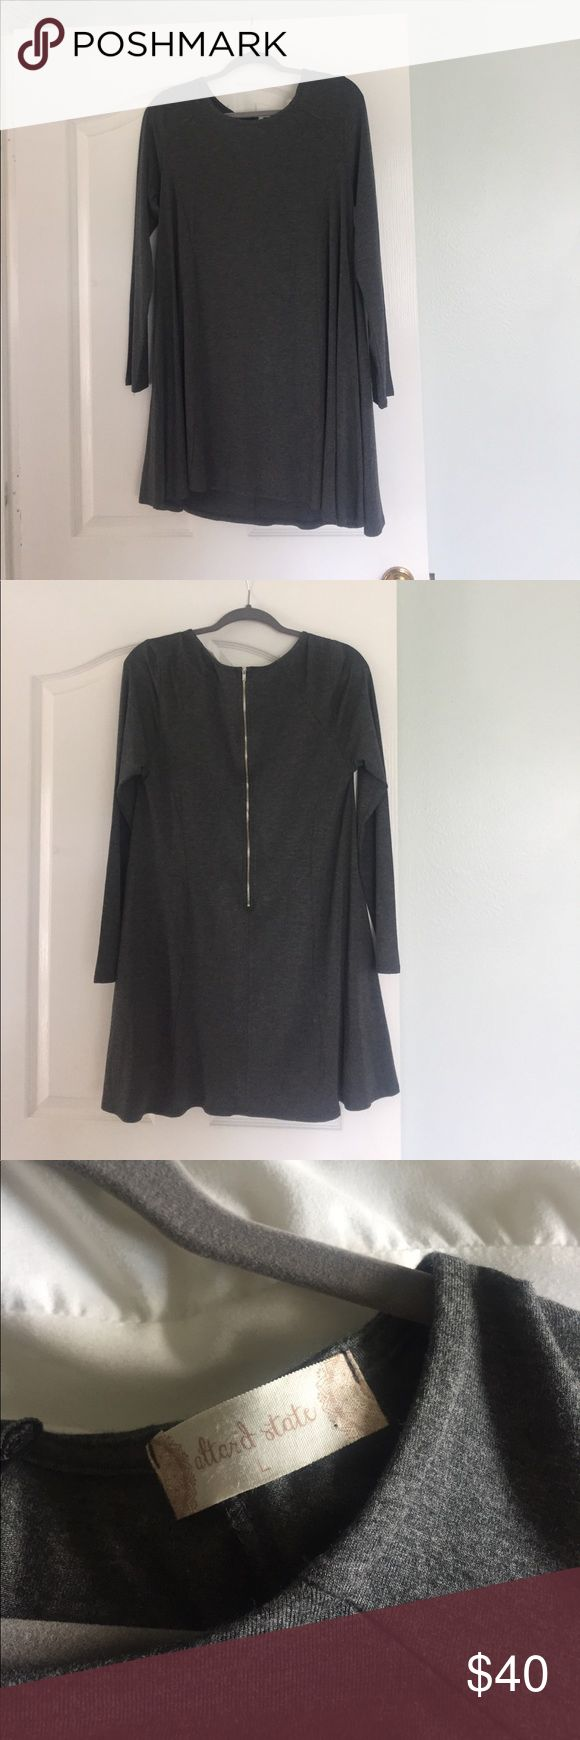 NWOT Altar'd state long sleeve charcoal grey dress This super soft charcoal grey dress is perfect for a cute-casual fall outfit! Thick cotton material and zipper back dress from altar'd state will become a wardrobe staple! Bought 2 months ago and never worn (it won't be cold enough in Texas until at least November). This dress hits me mid thigh and I am 5'8. All offers welcome! Altar'd State Dresses Long Sleeve